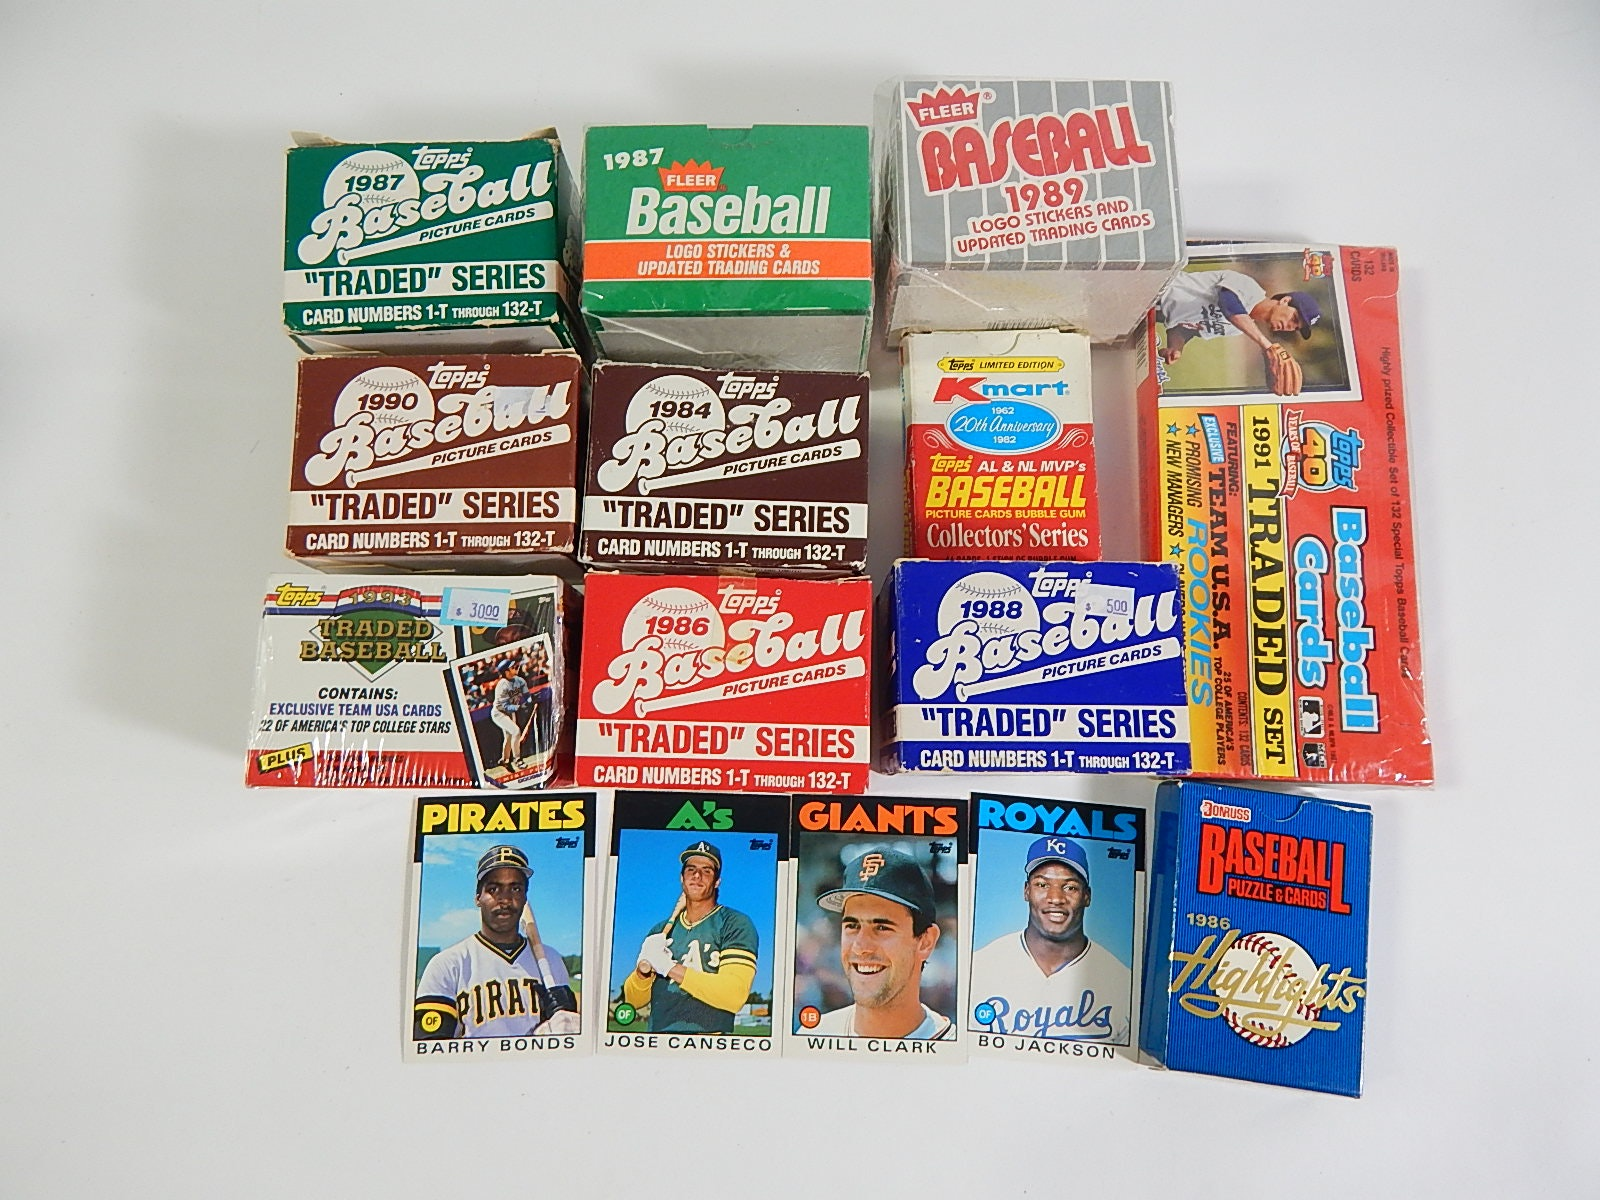 Eleven Baseball Card Sets from 1982 to 1991